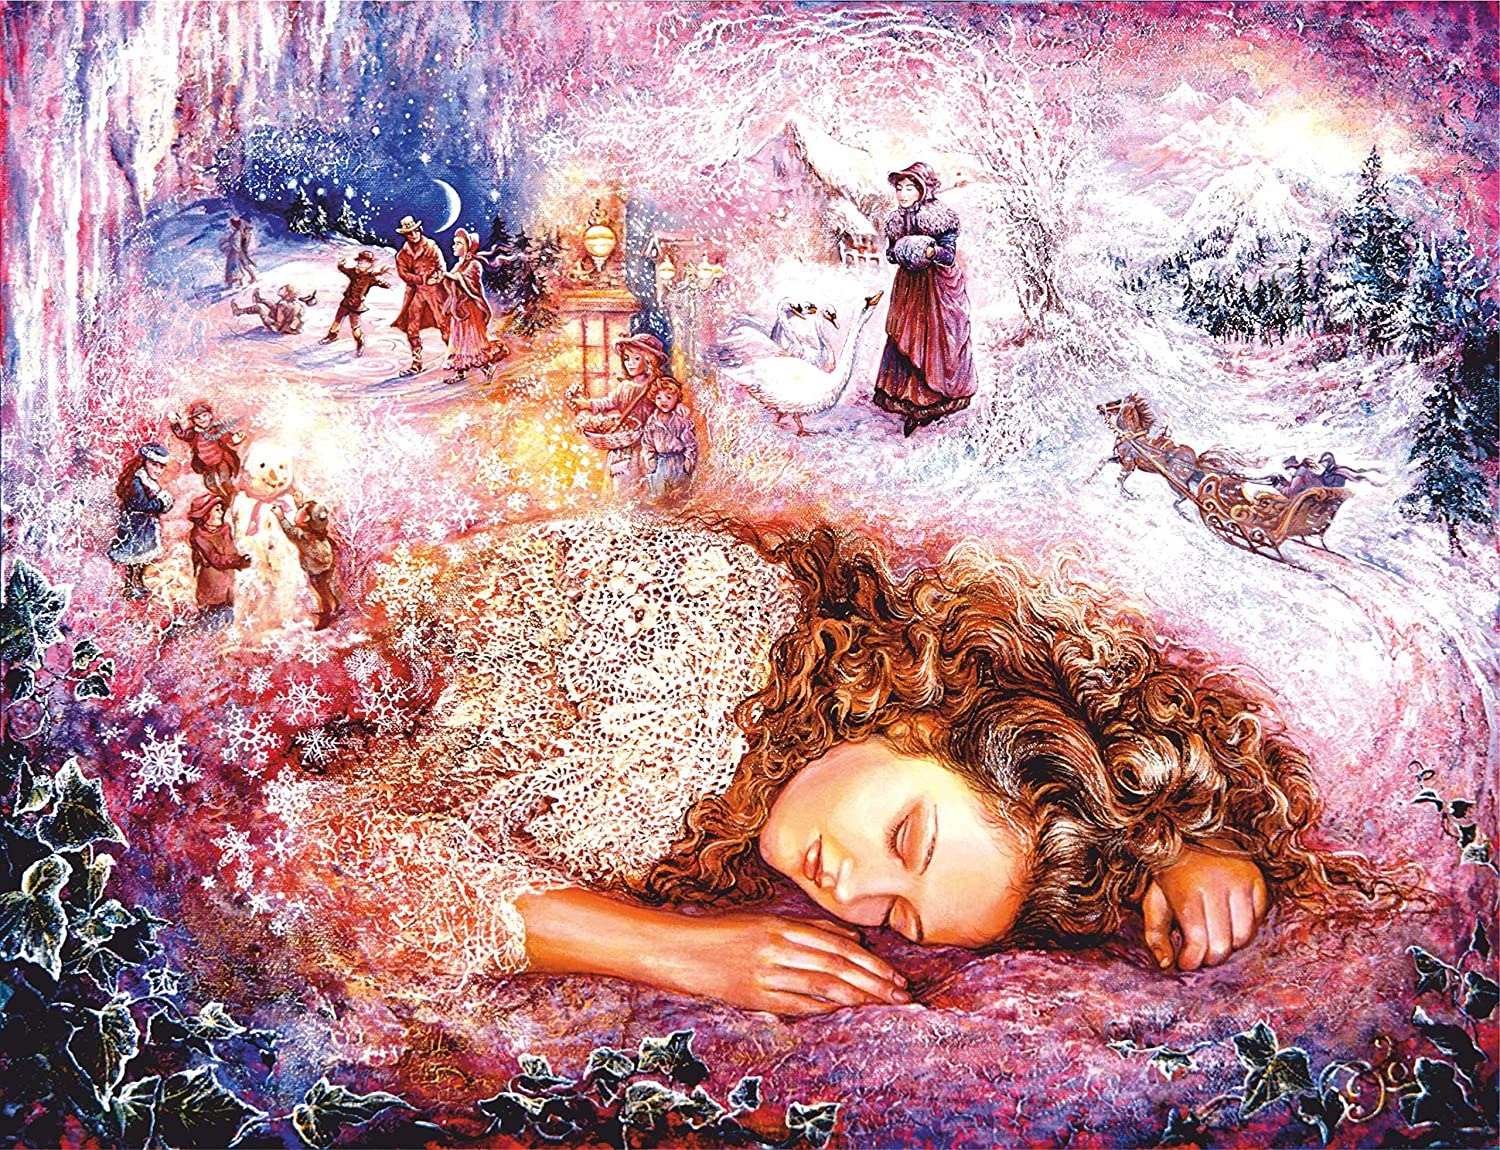 Wooden Jigsaw Puzzle Winter Dreaming Artist Josephine Wall, 1000 Pieces for Adult, Entertainment DIY Toys for Graet Gift Home Decor